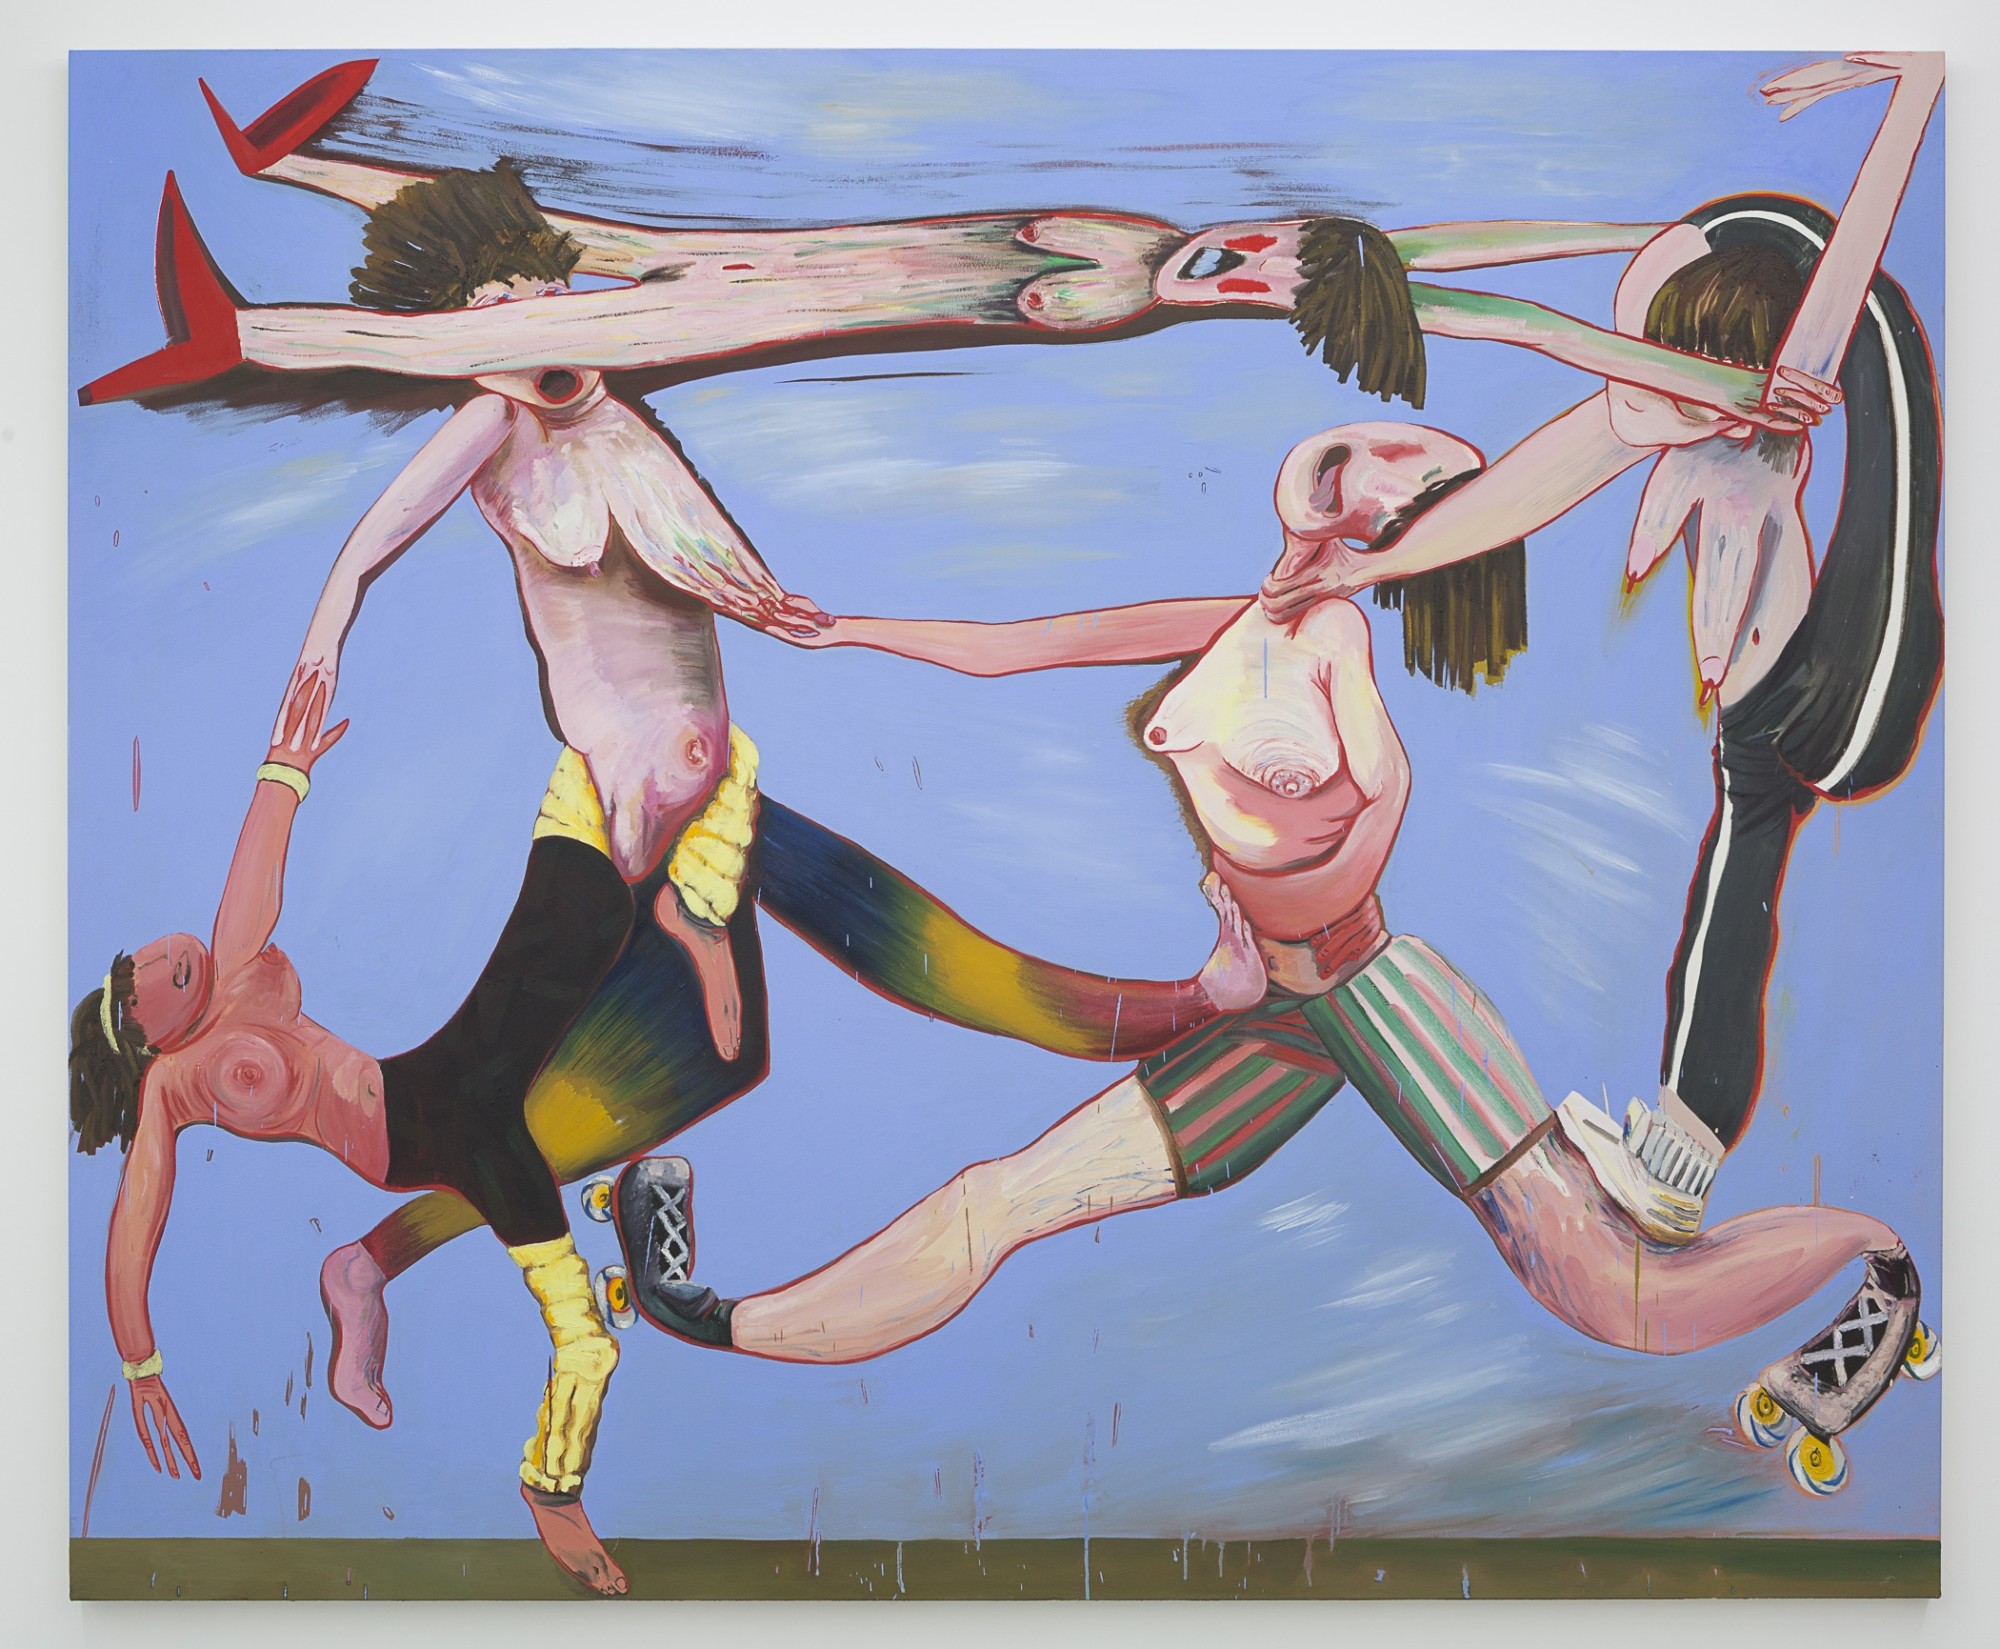 Noilly, Nibbles and Neck Braces, 2018  Oil on canvas  190 x 230 cm  74 3/4 x 90 1/2 in.